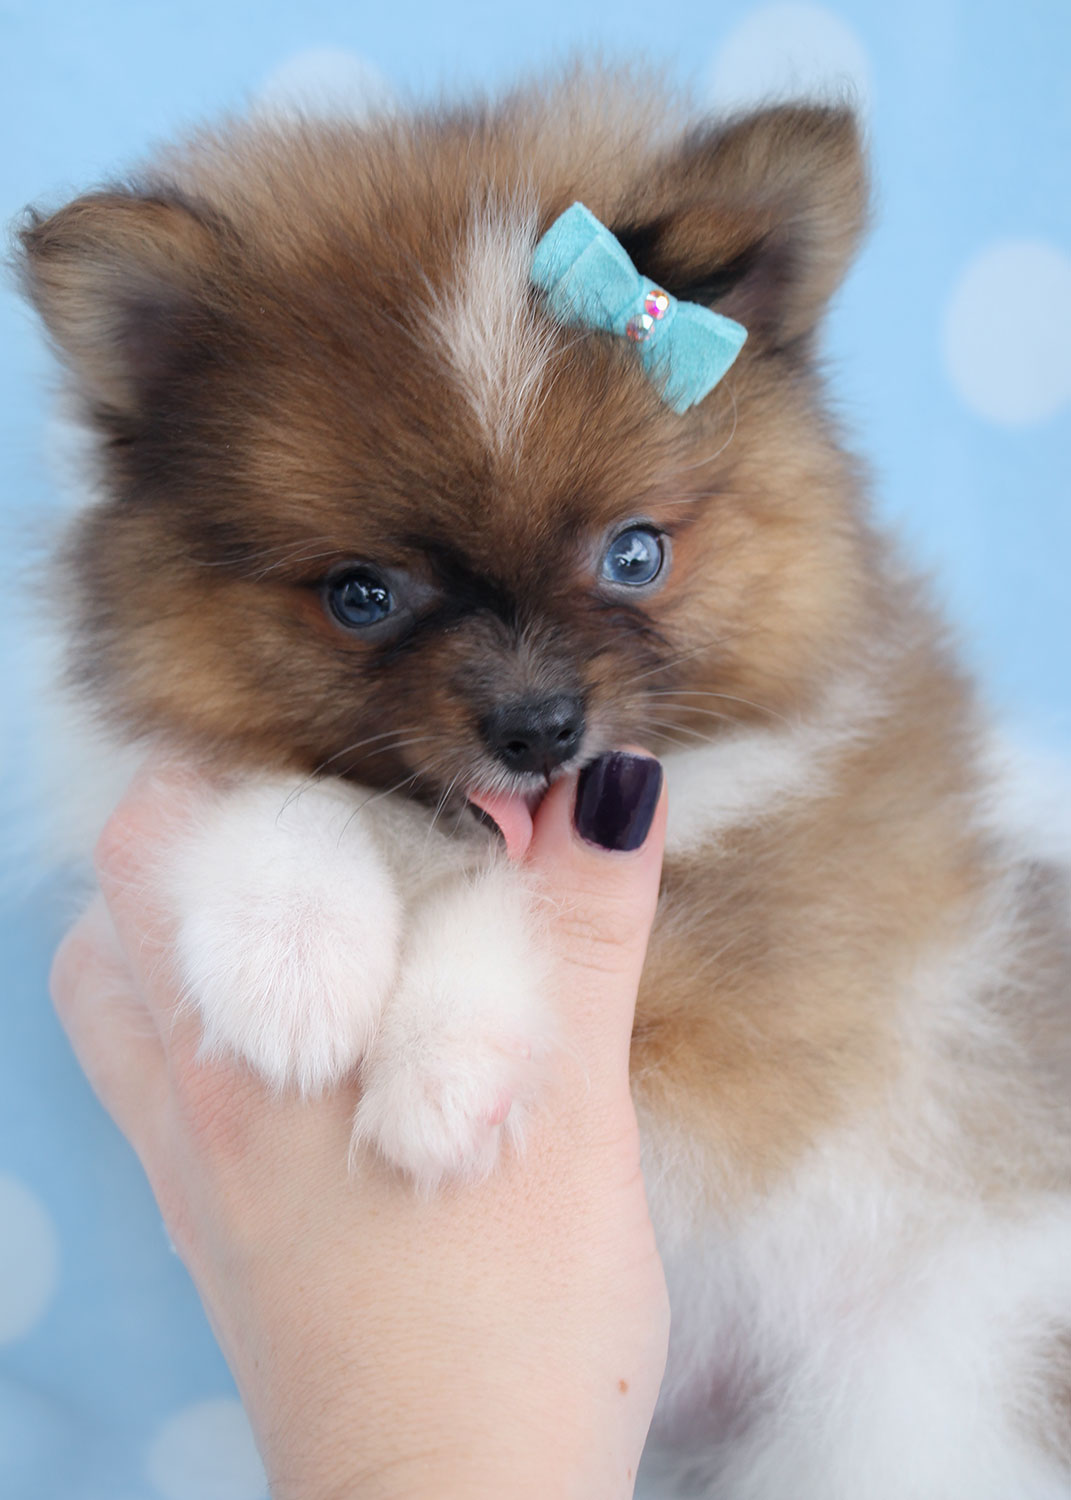 Cute Pomeranian Puppies Videos Compilation #2 | Cutest and ... |Pom Puppies